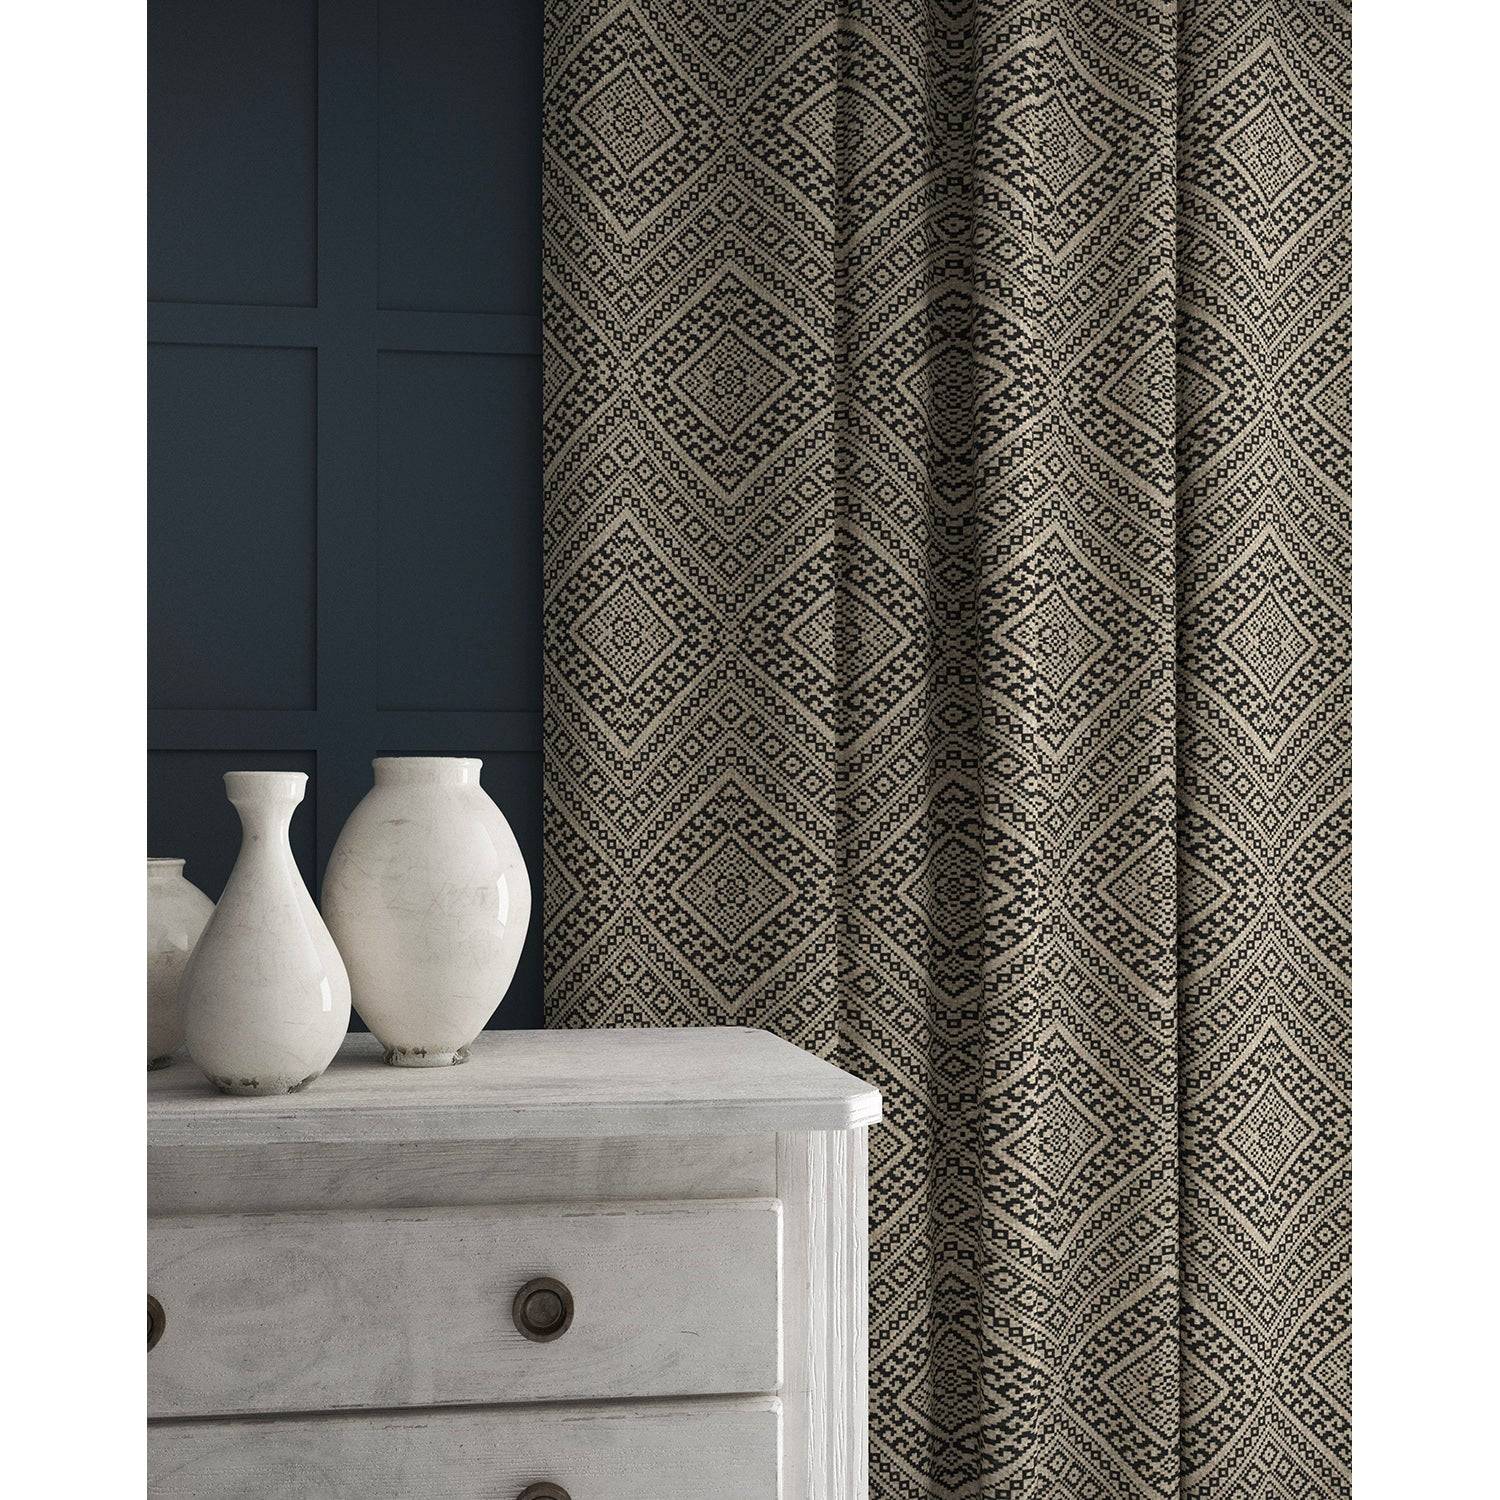 Curtain in a black and neutral coloured geometric wool weave fabric